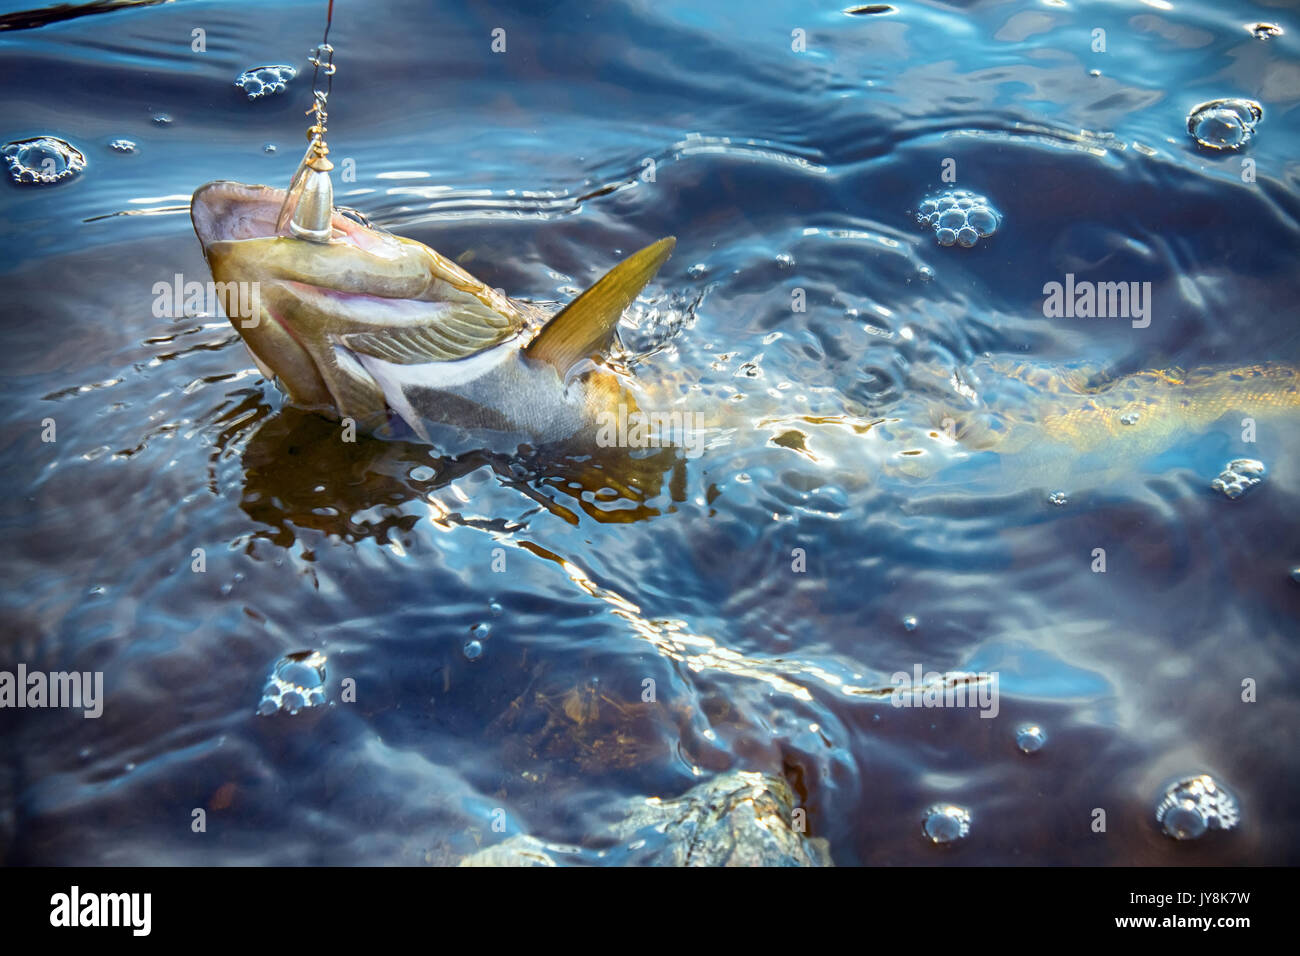 Spinning fishing (lure fishing) trout in lakes of Scandinavia. Brook trout (steelhead rainbow trout, char, bull-trout, cutthroat, lax, Salmo trutta tr - Stock Image